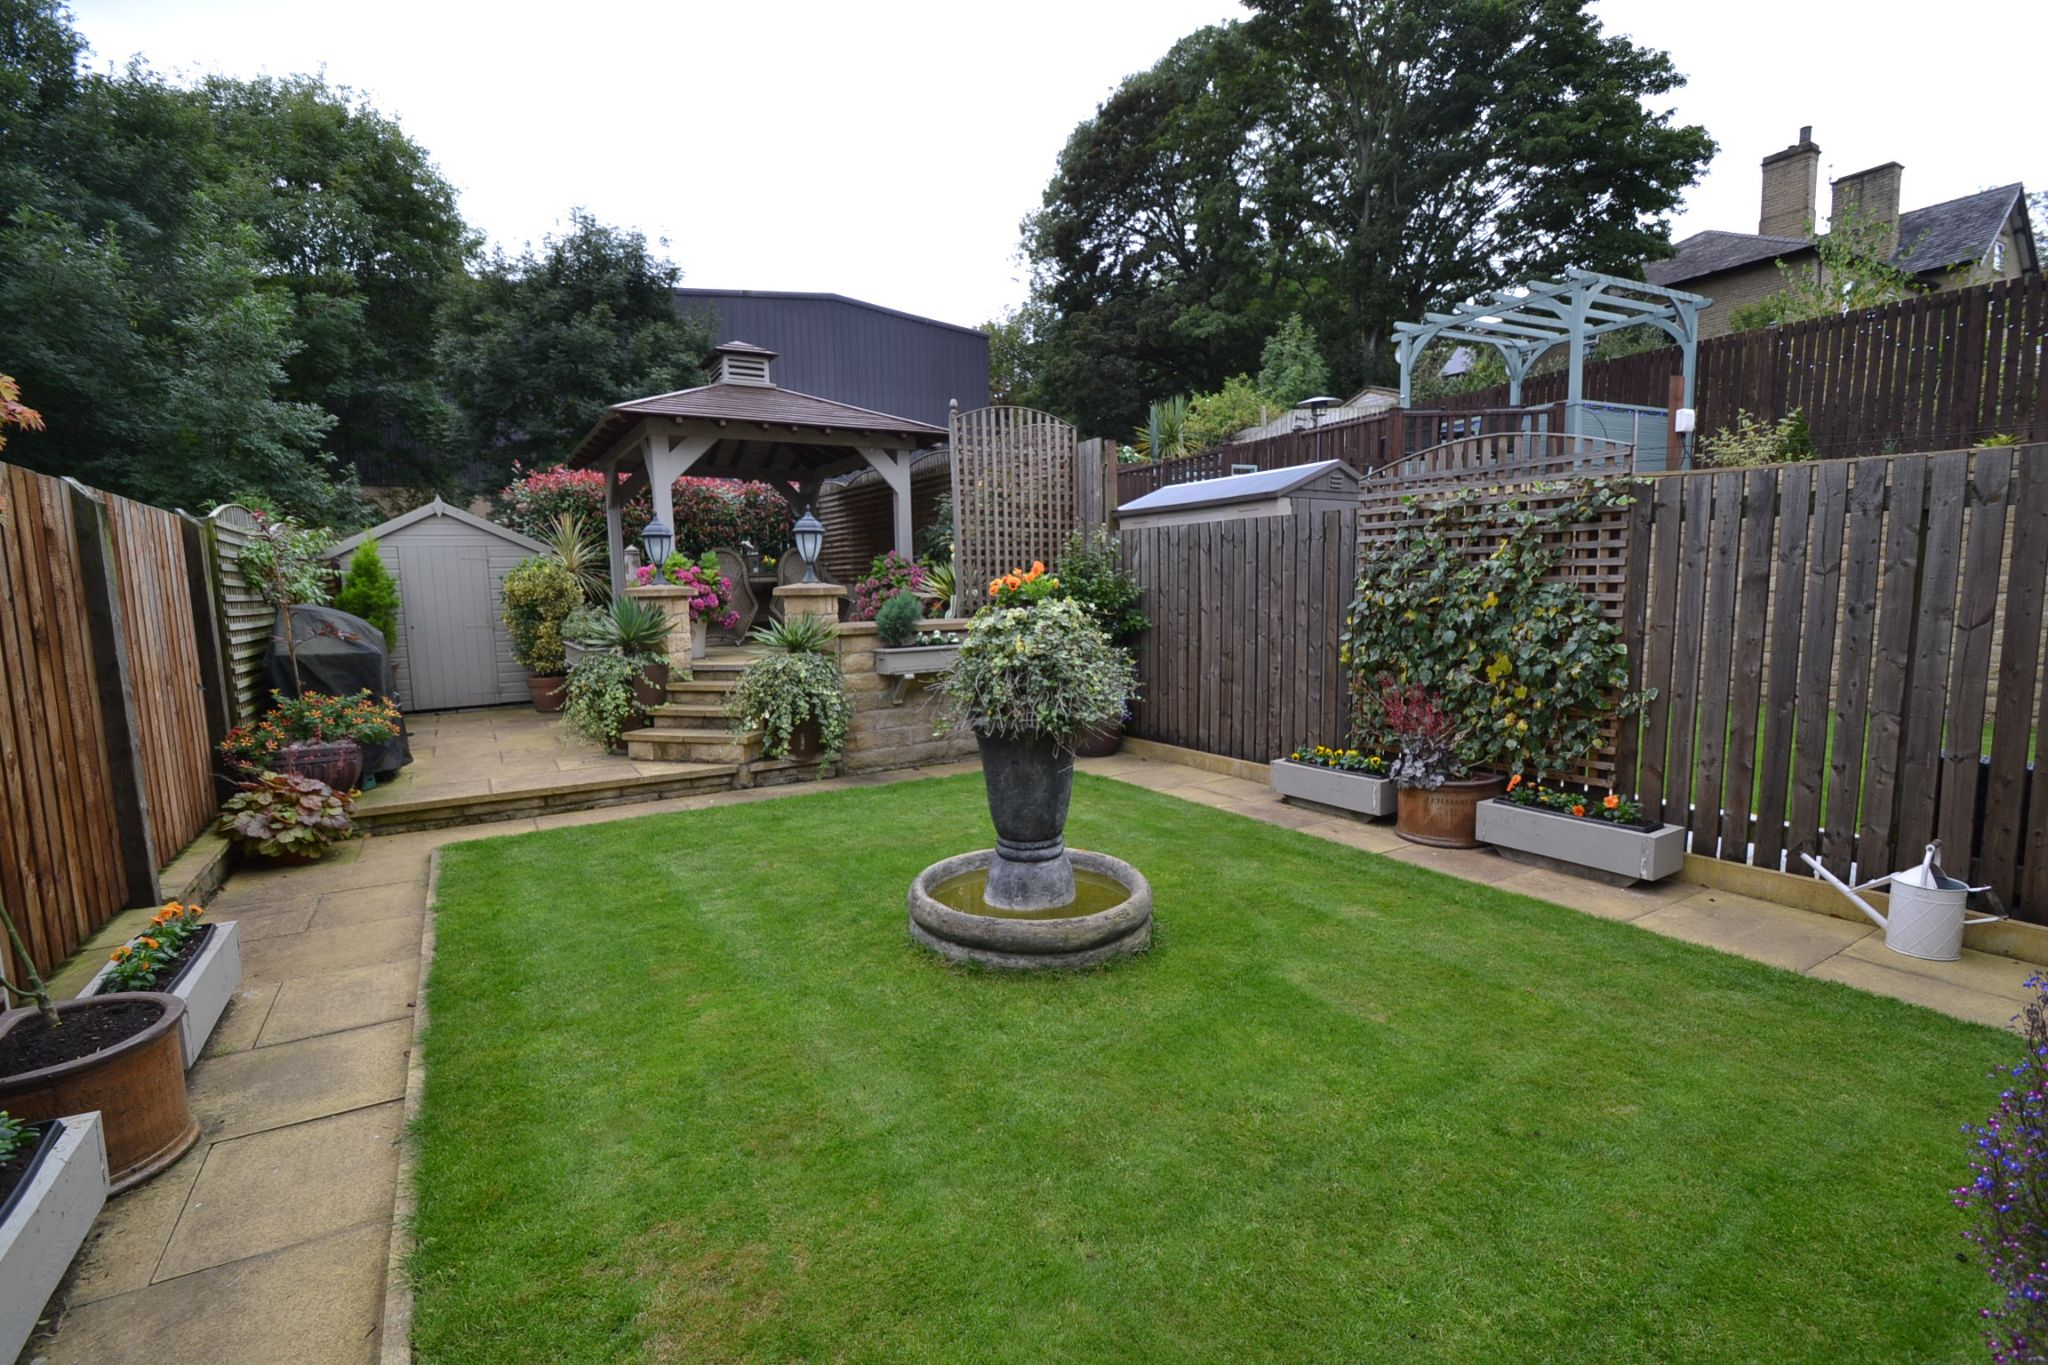 4 Bedroom Semi-detached House For Sale - Photograph 23